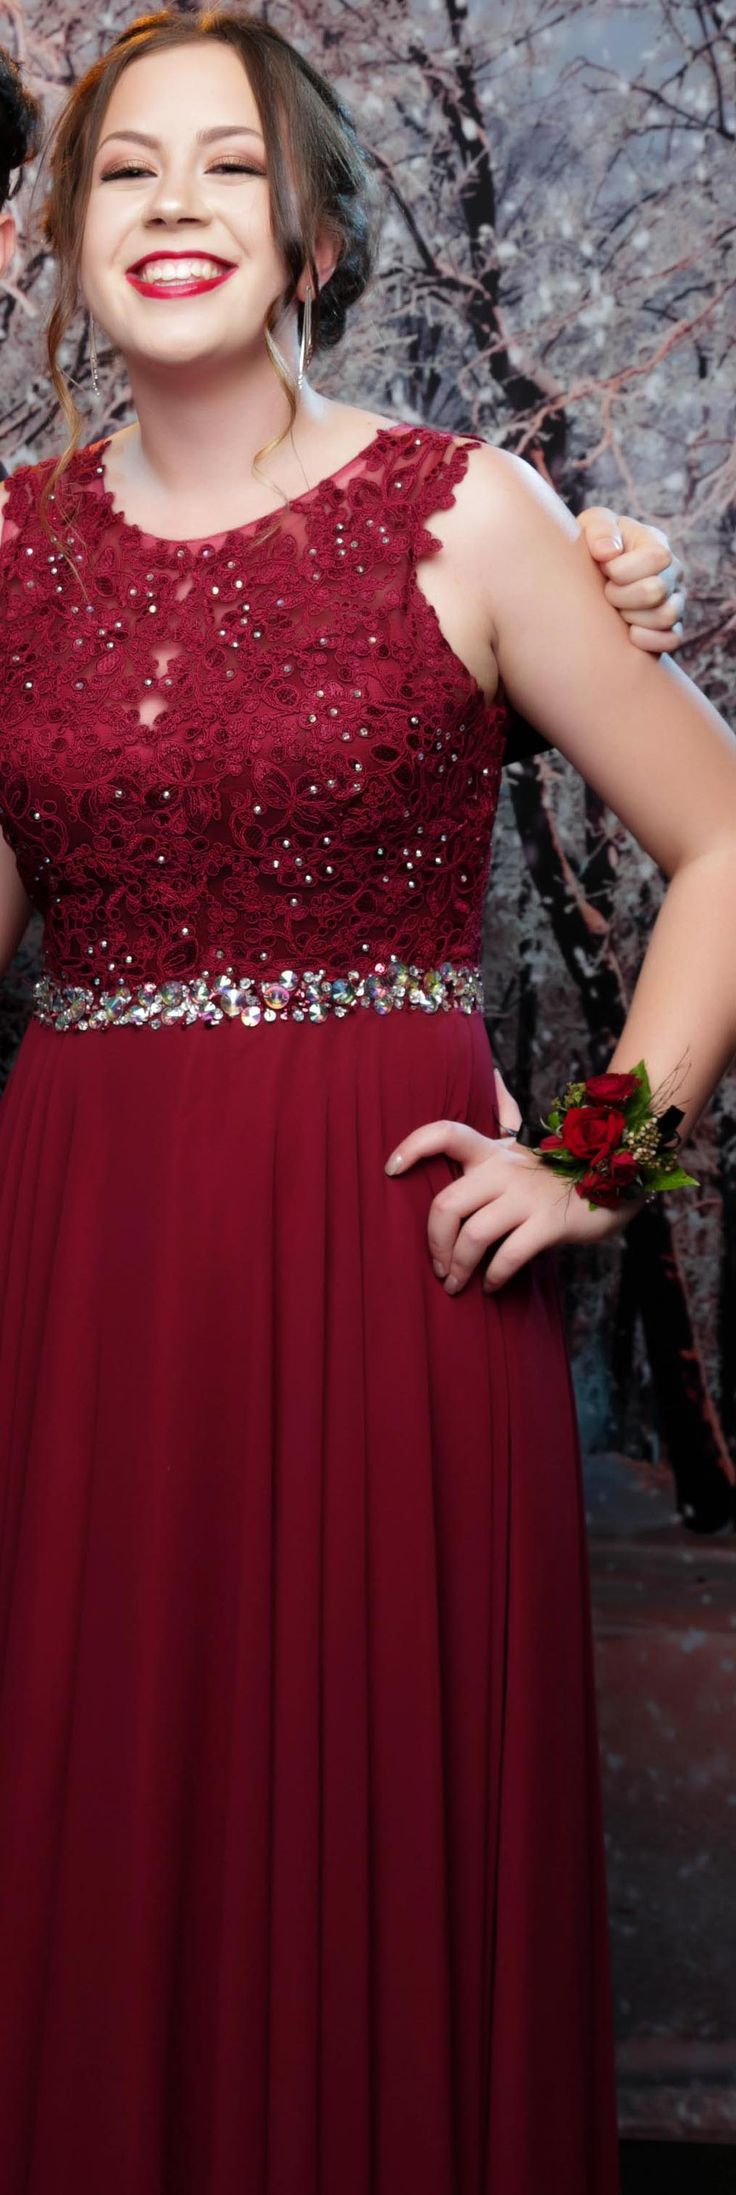 Long Bay College School Ball 2017. Love the detail in this gown!